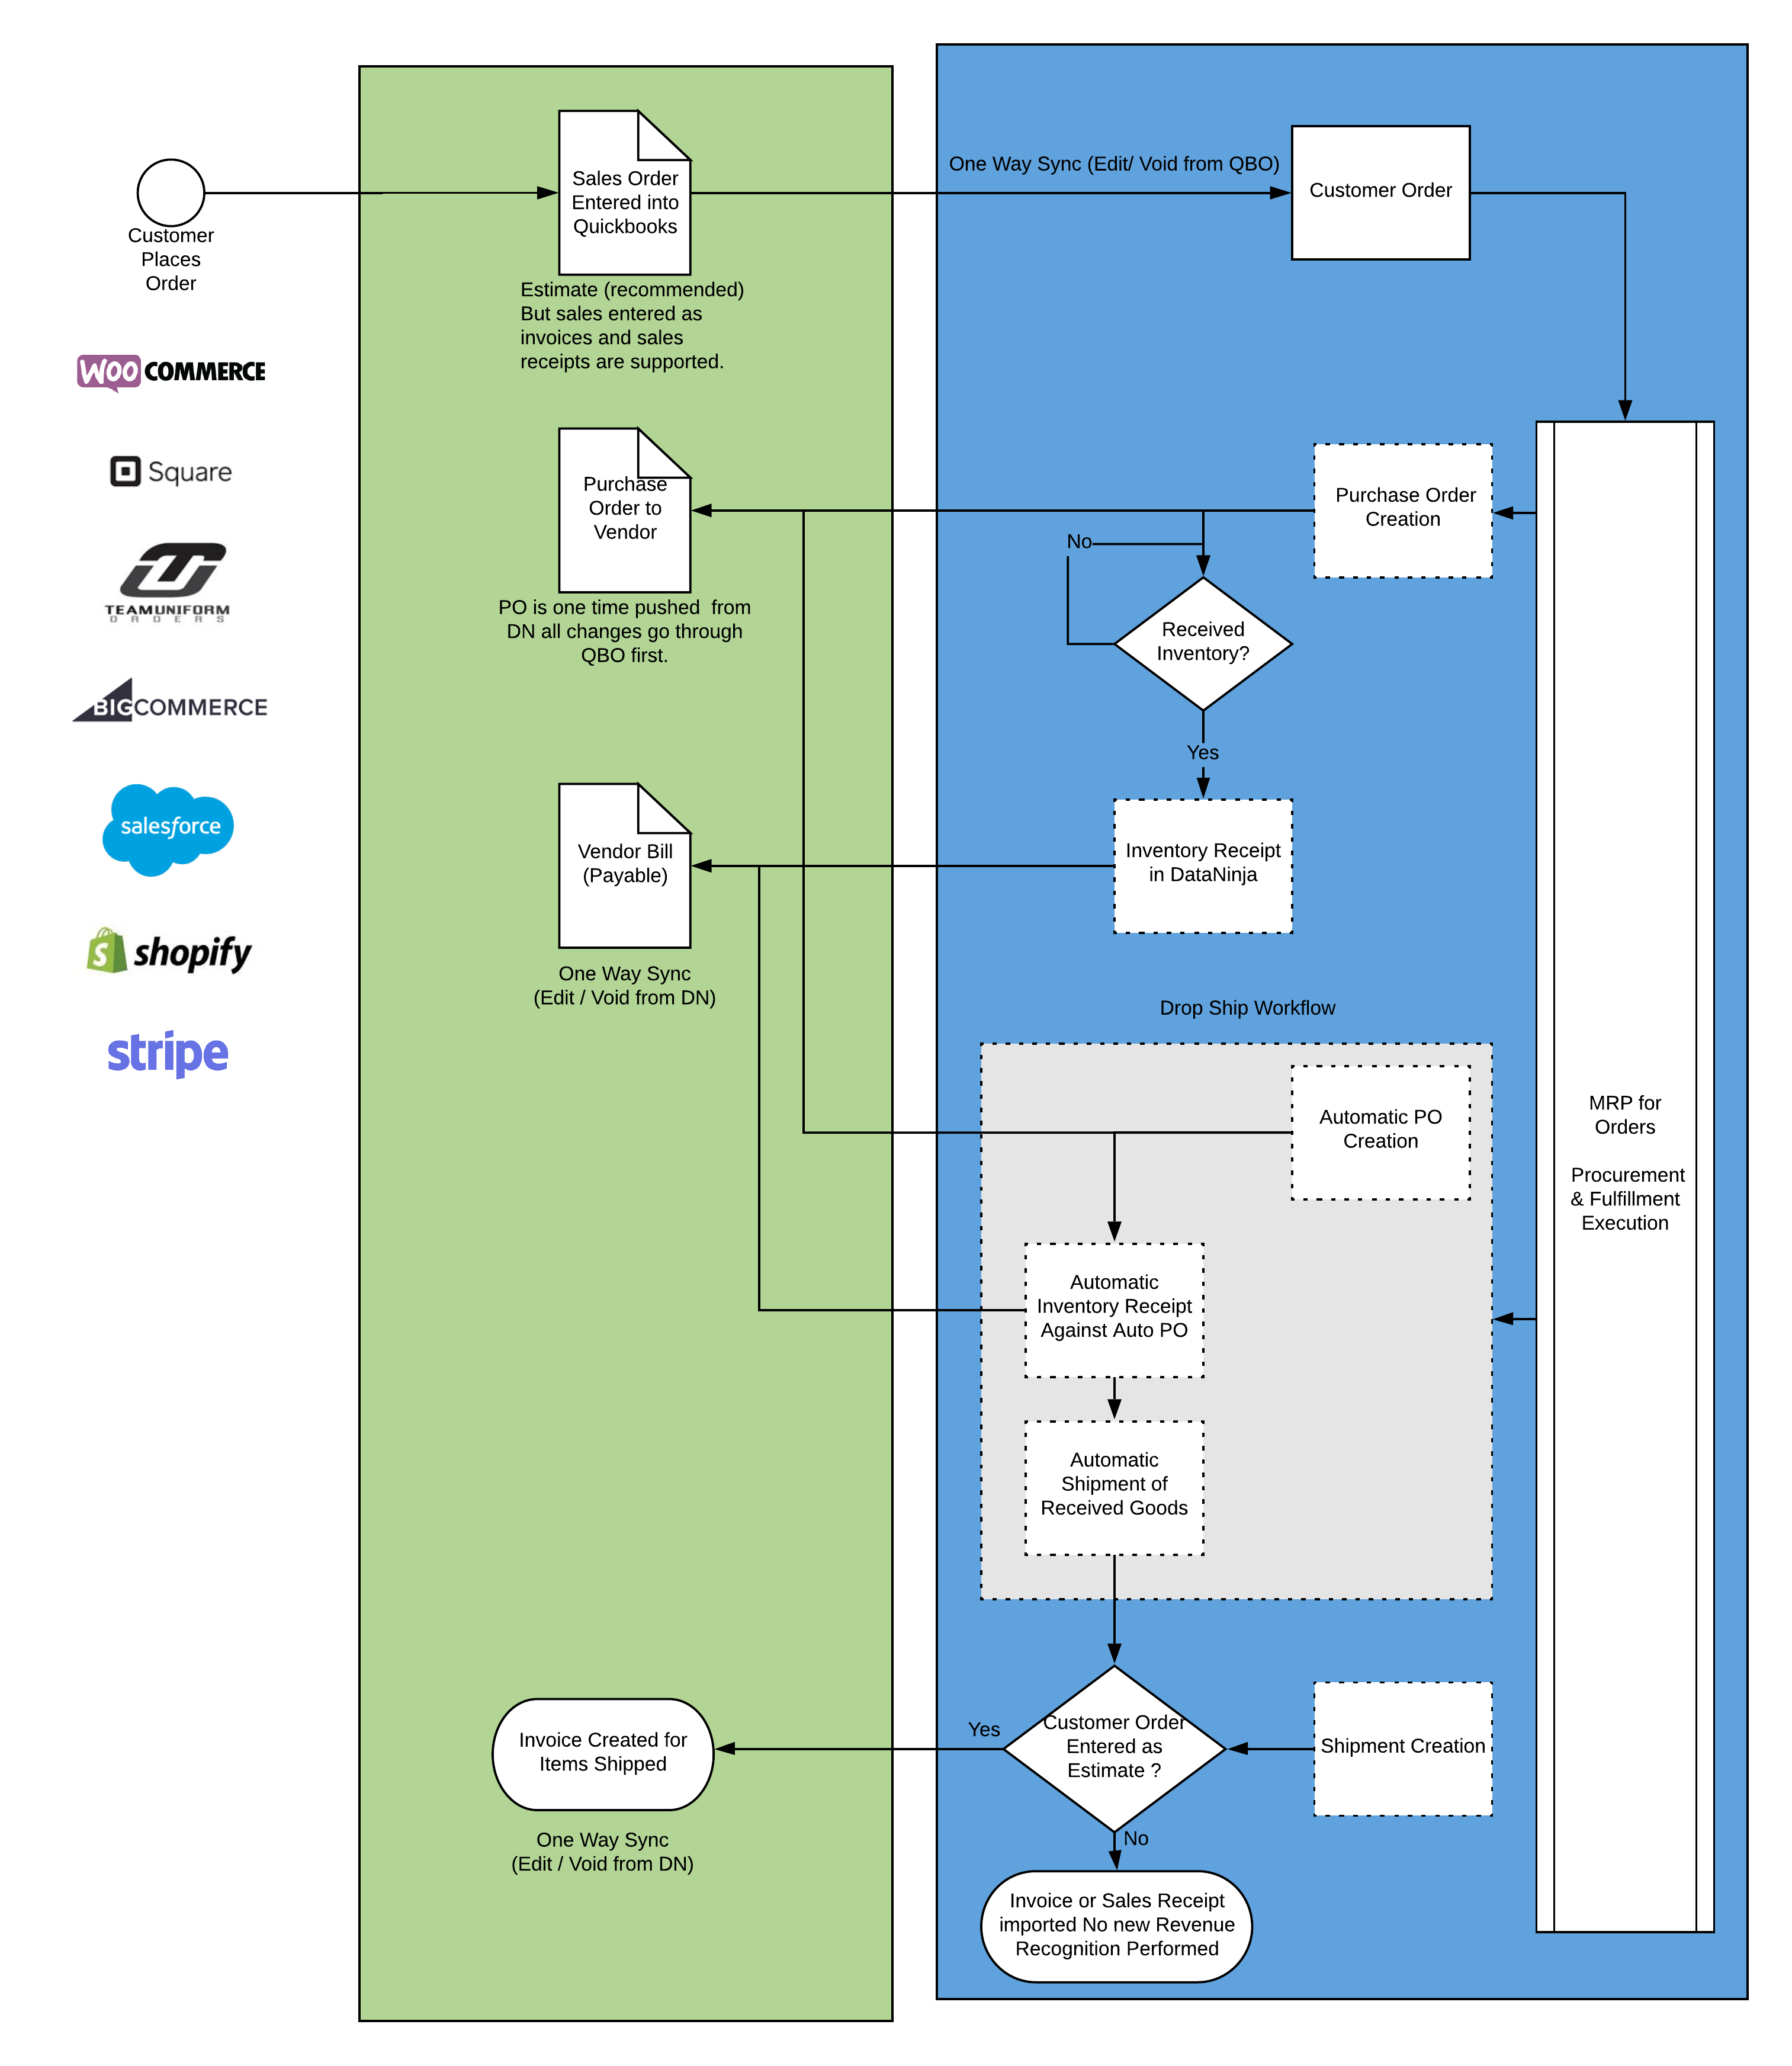 click workflow diagram to expand